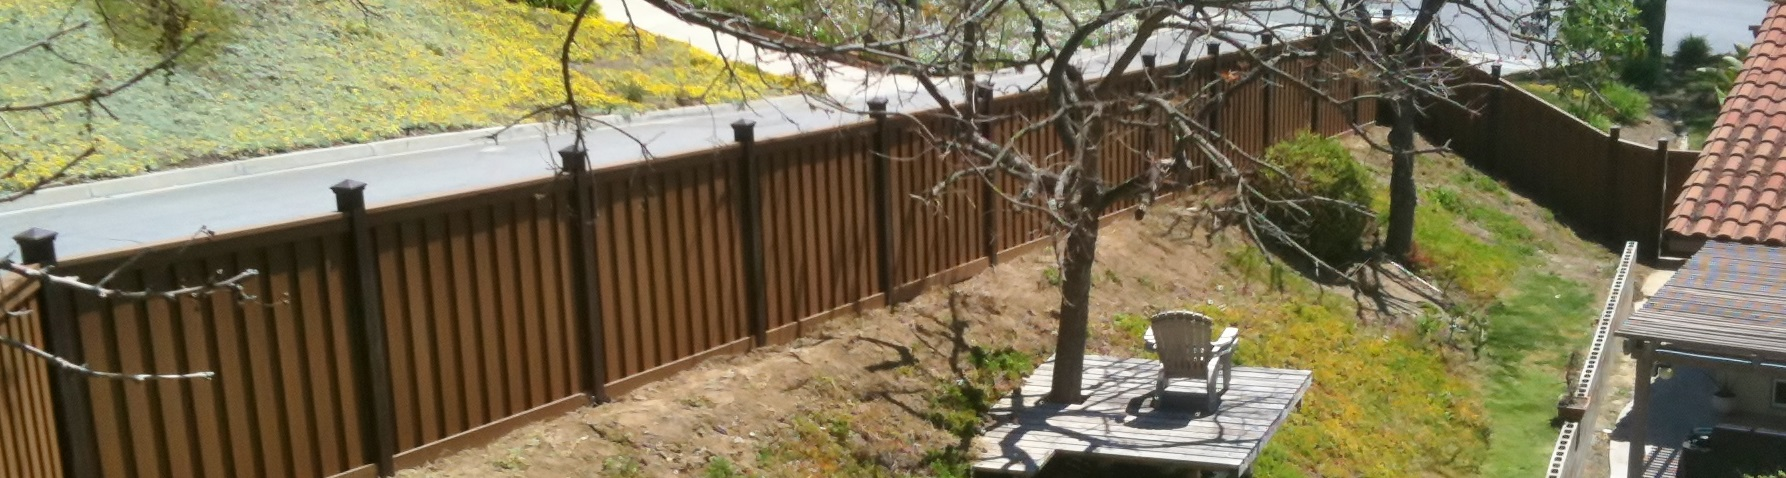 Trex Fencing constructed in Chino Hills California